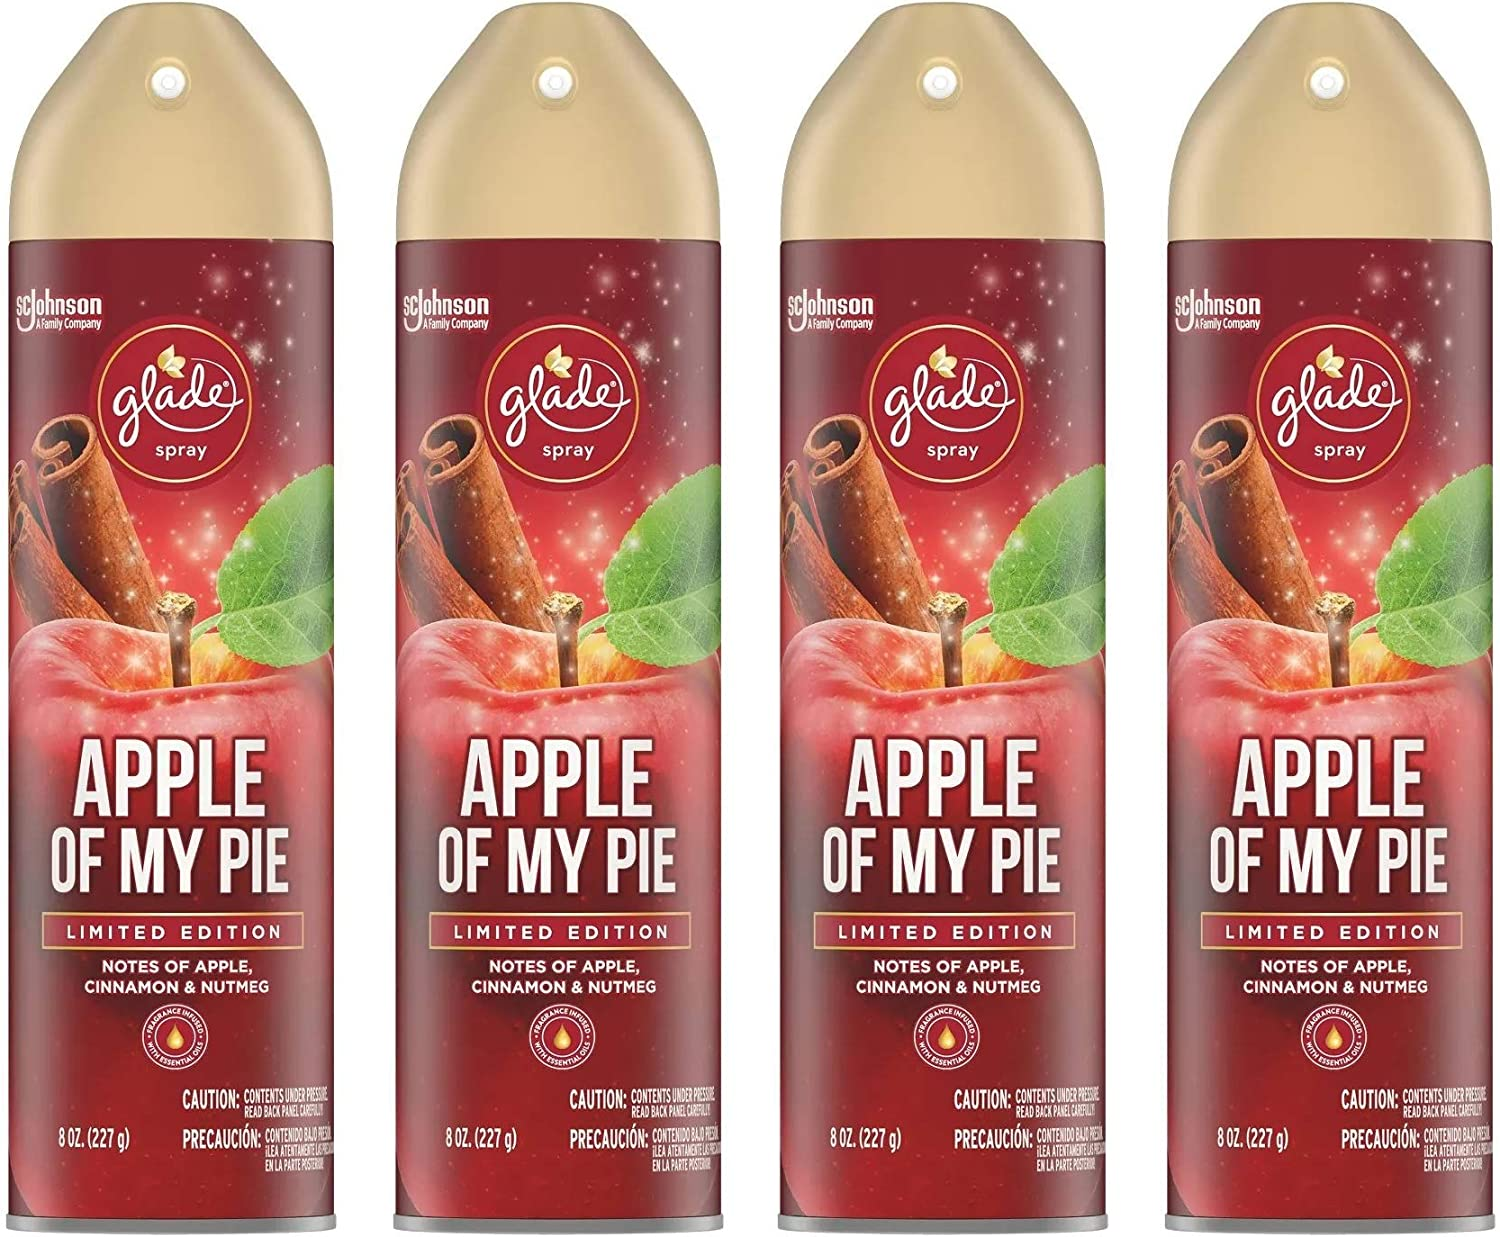 Glade Air Freshener Spray - Apple of My Pie - Holiday Collection 2020 - Net Wt. 8 OZ (227 g) Per Can - Pack of 4 Cans